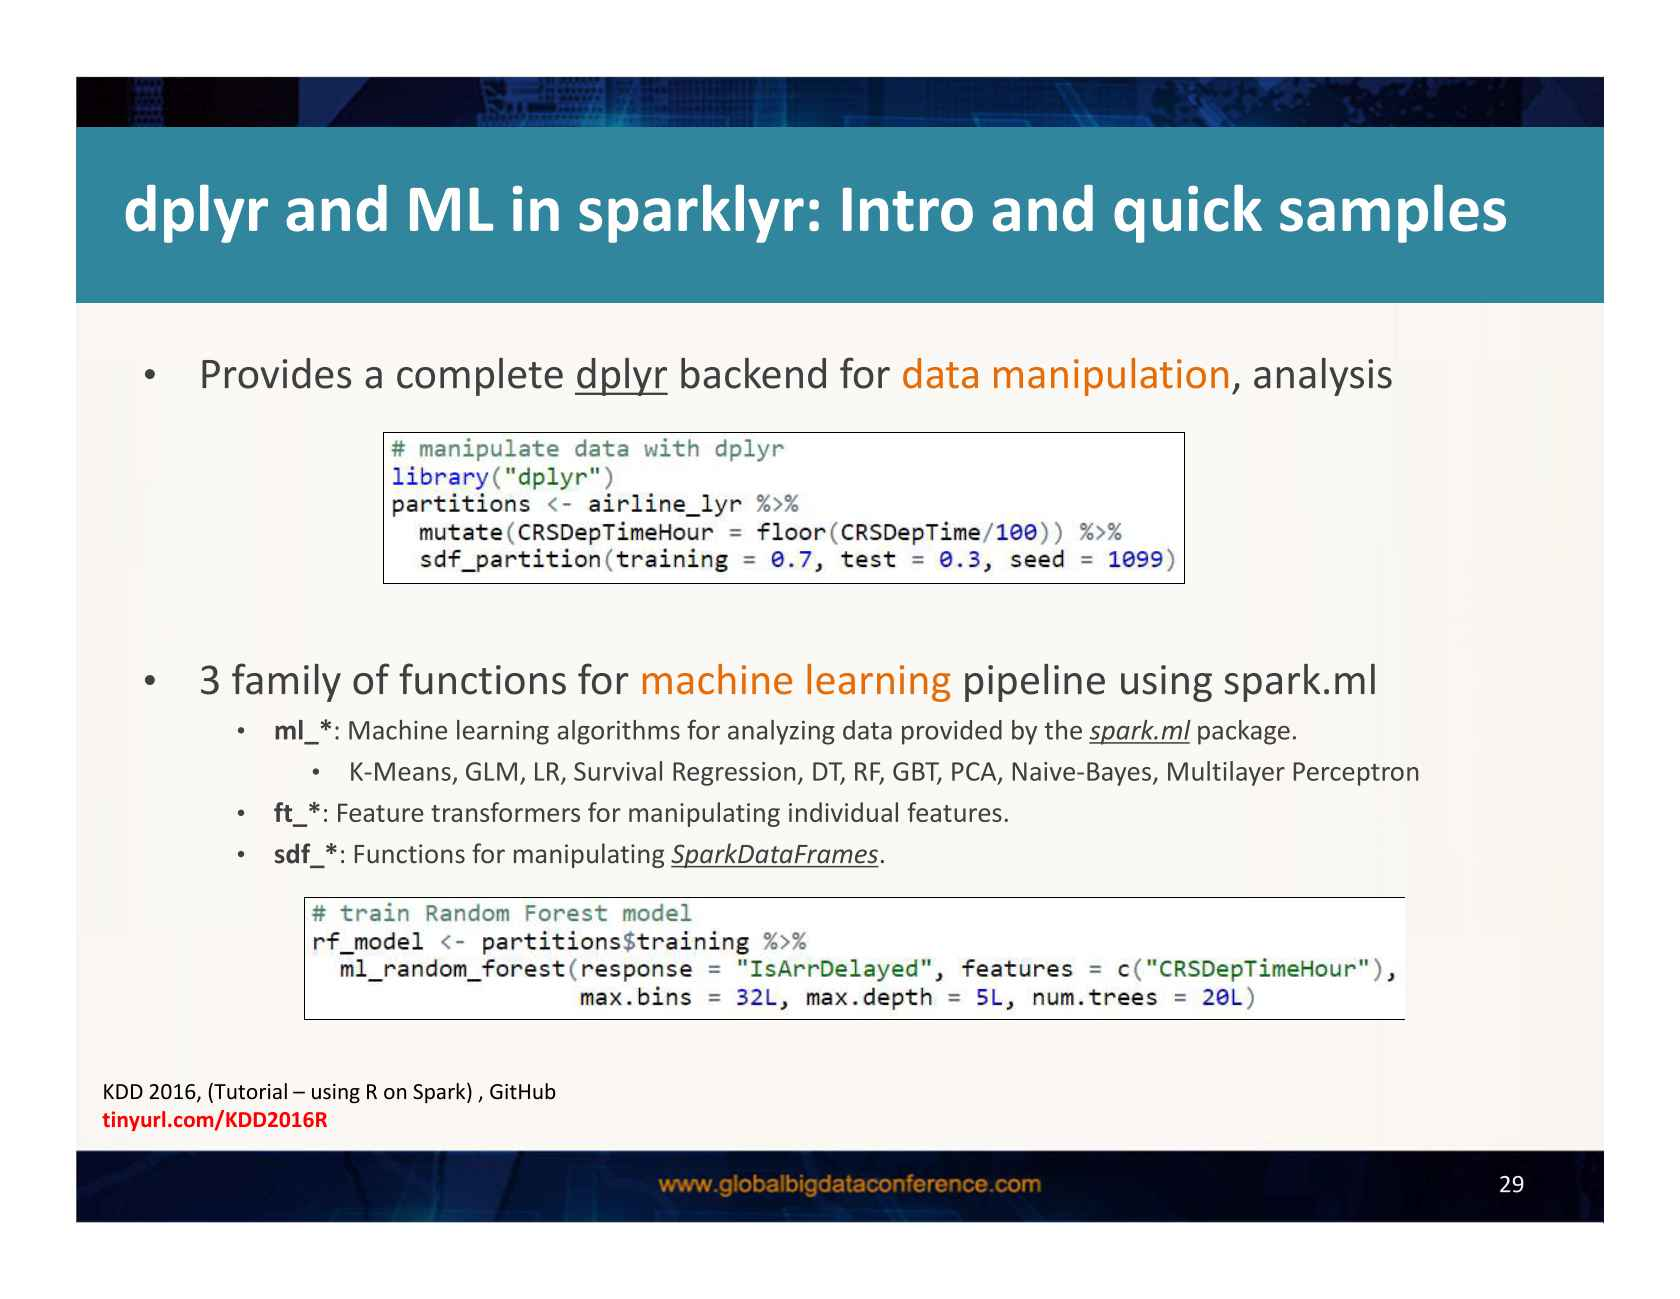 Machine Learning and End-to-End Data Analysis Processes in